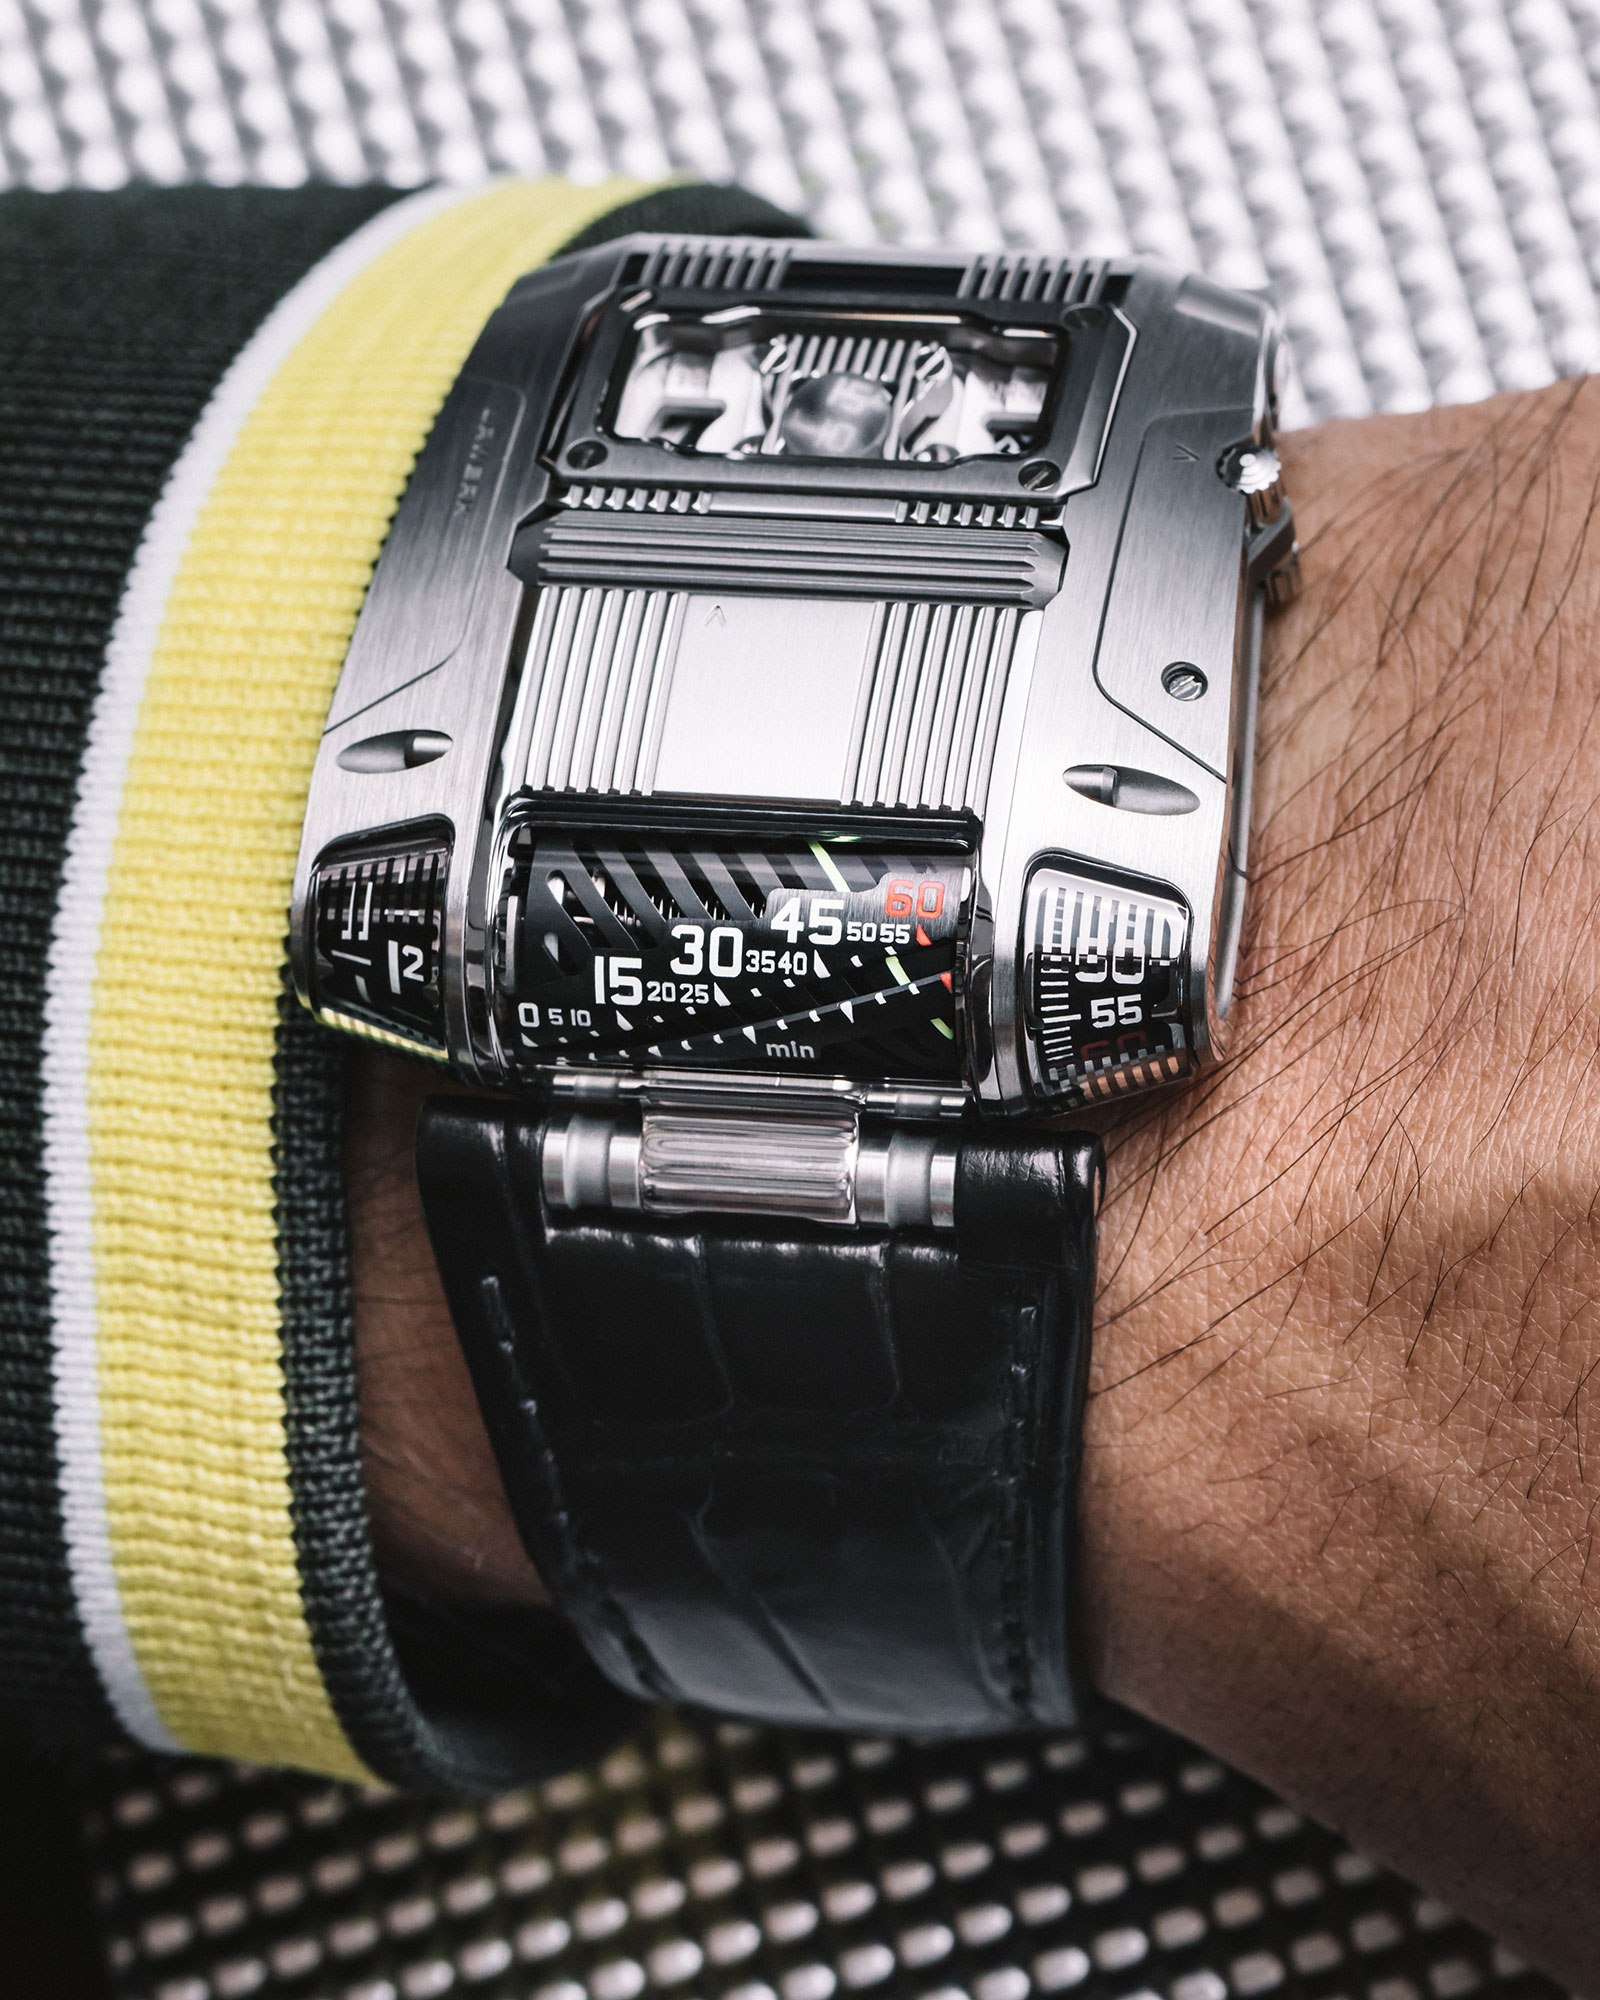 Urwerk UR-111C watch 7